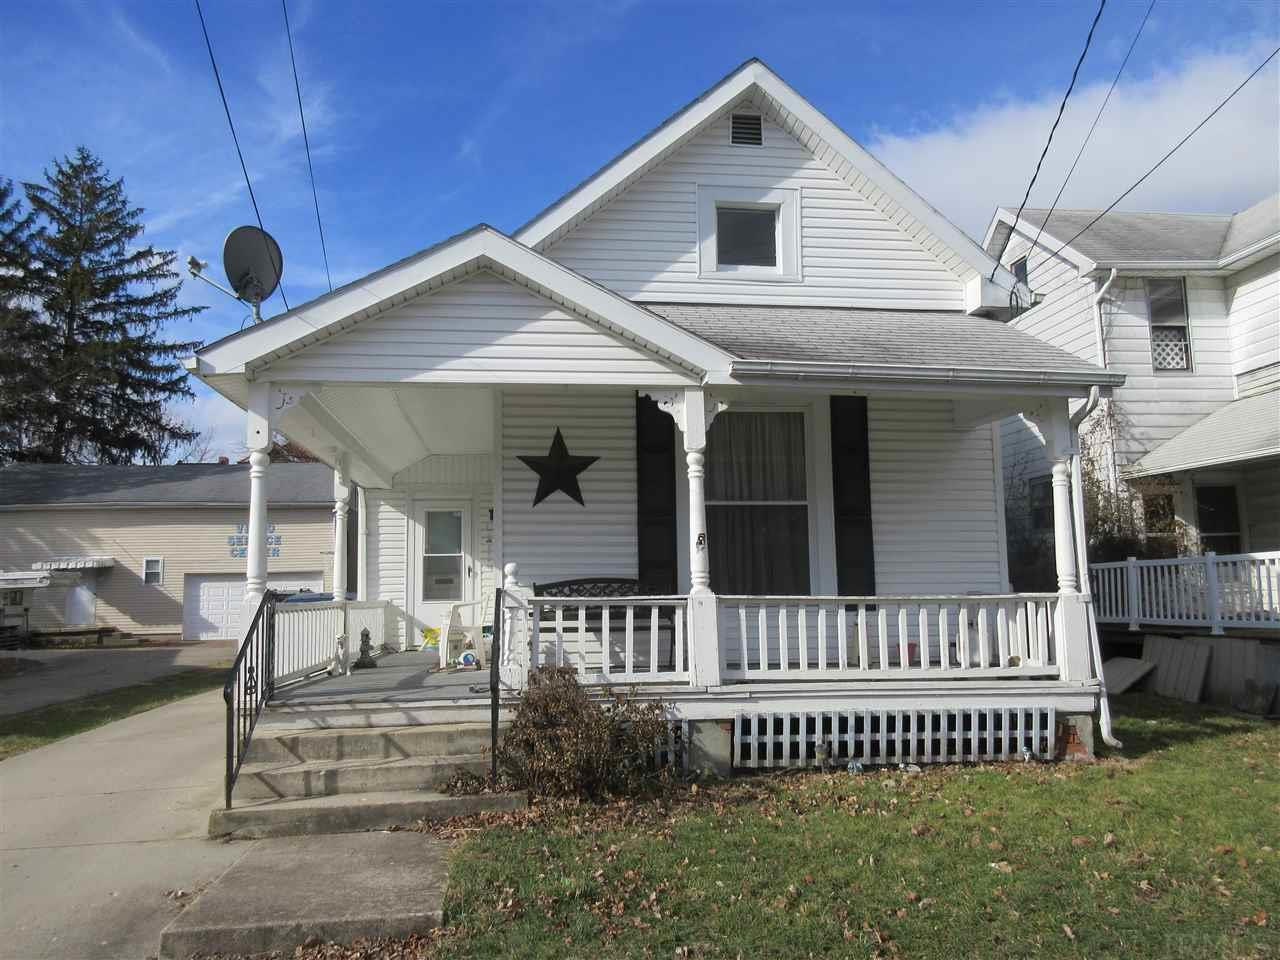 317 N 12th St, New Castle, IN 47362